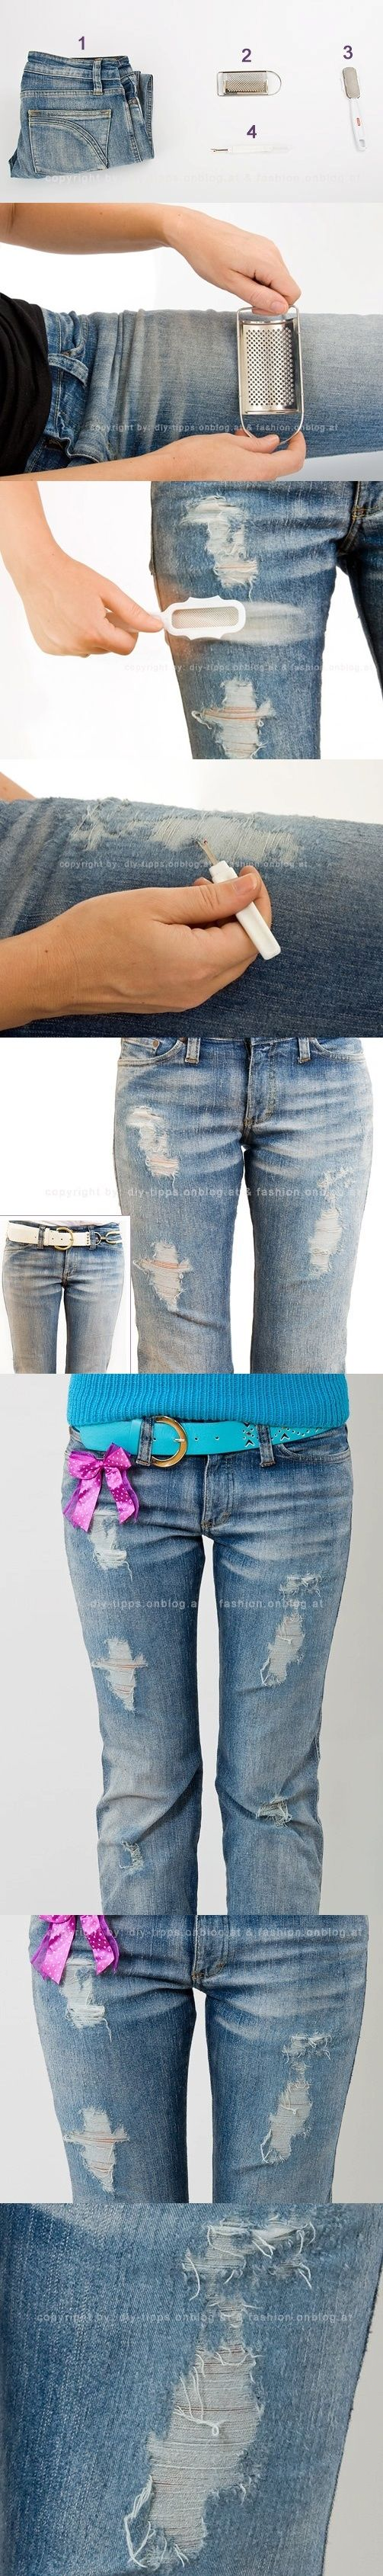 """Fridays at work we get to """"dress down"""", which for me means I can wear jeans. So I made it Jean Day here on the blog, too. » WTF, Pinterest?"""